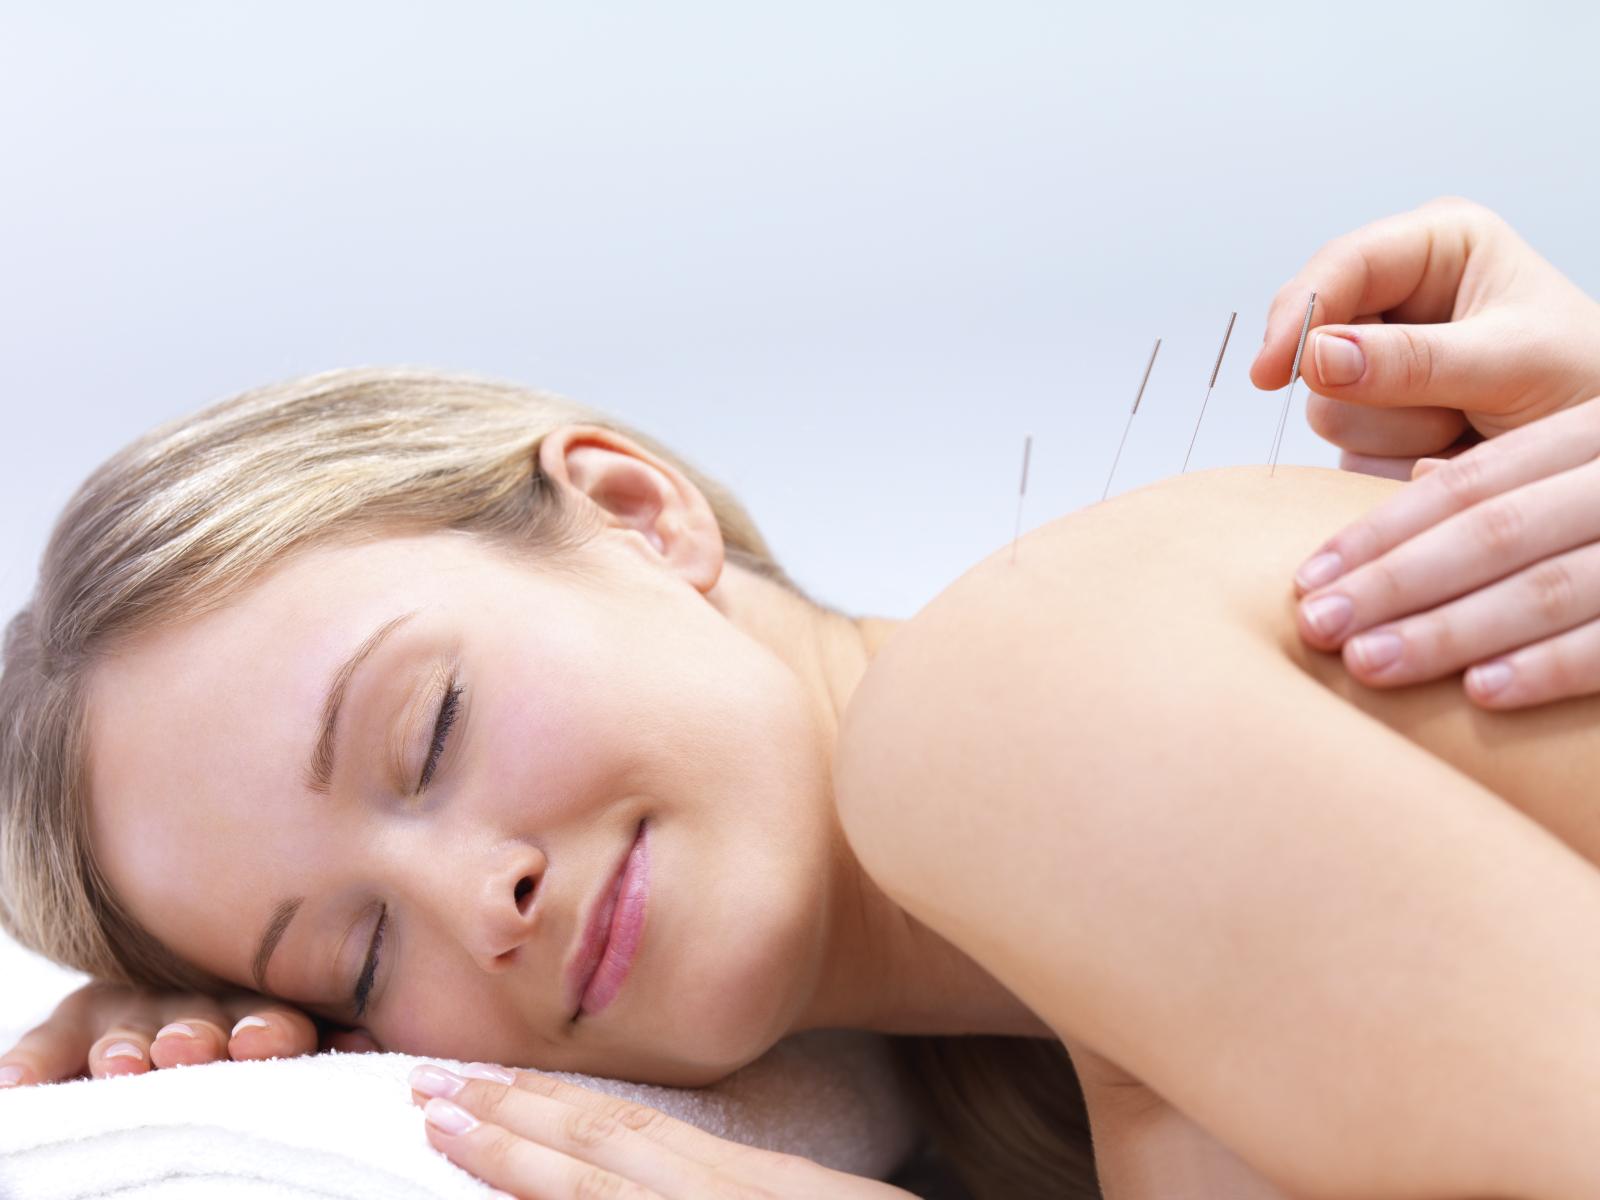 Acupuncture needles for backache